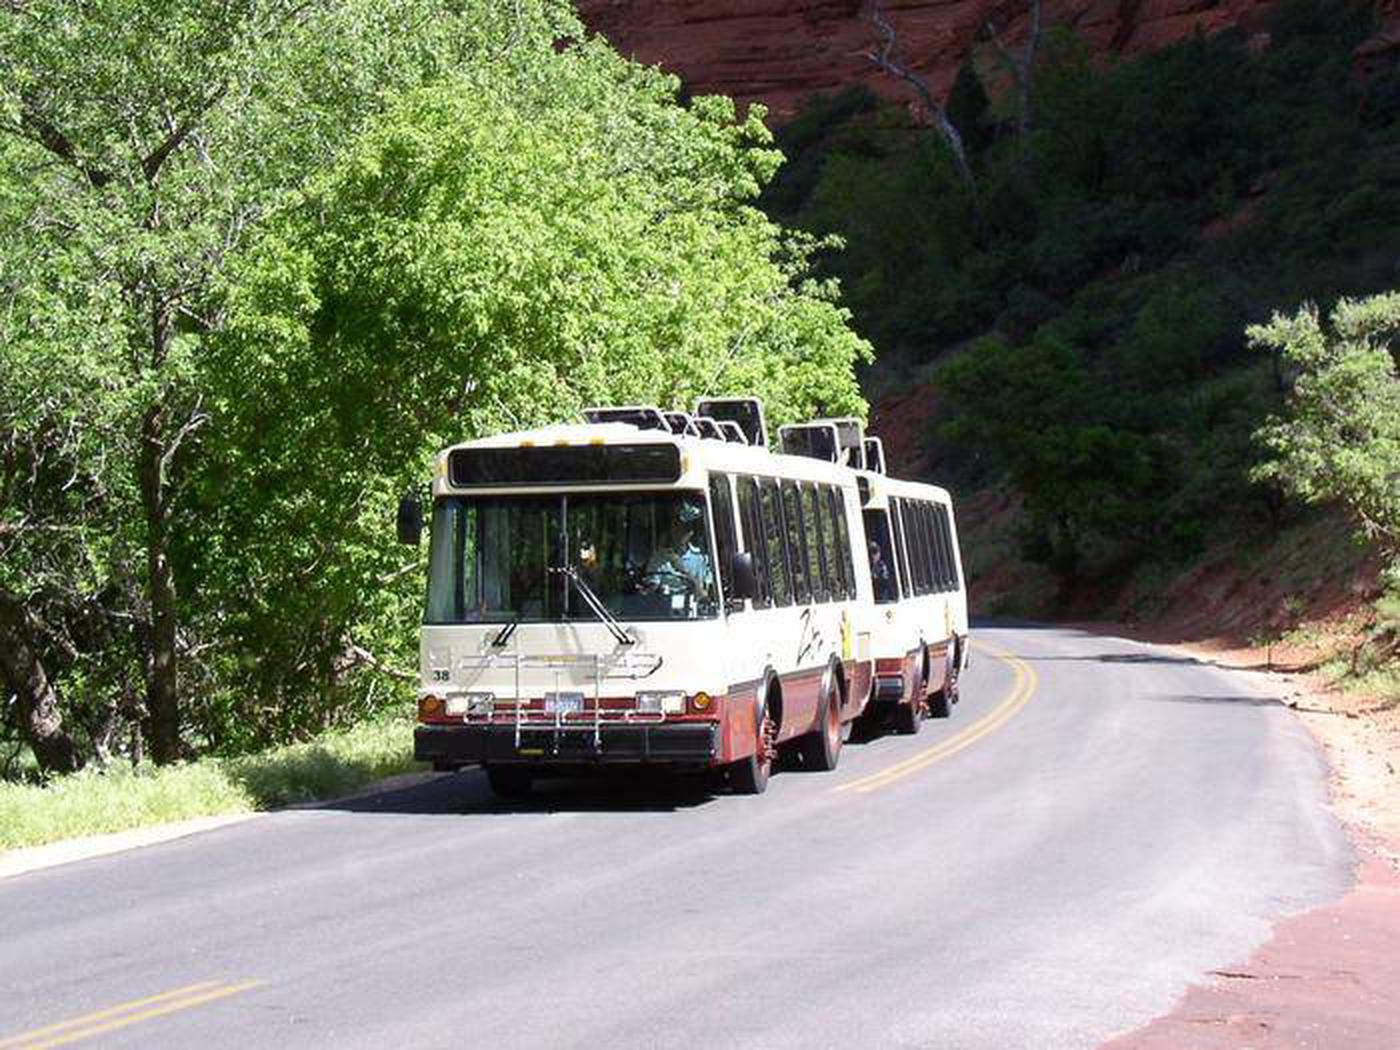 Zion Shuttle Bus Heading up Canyon Shuttle bus in the canyon